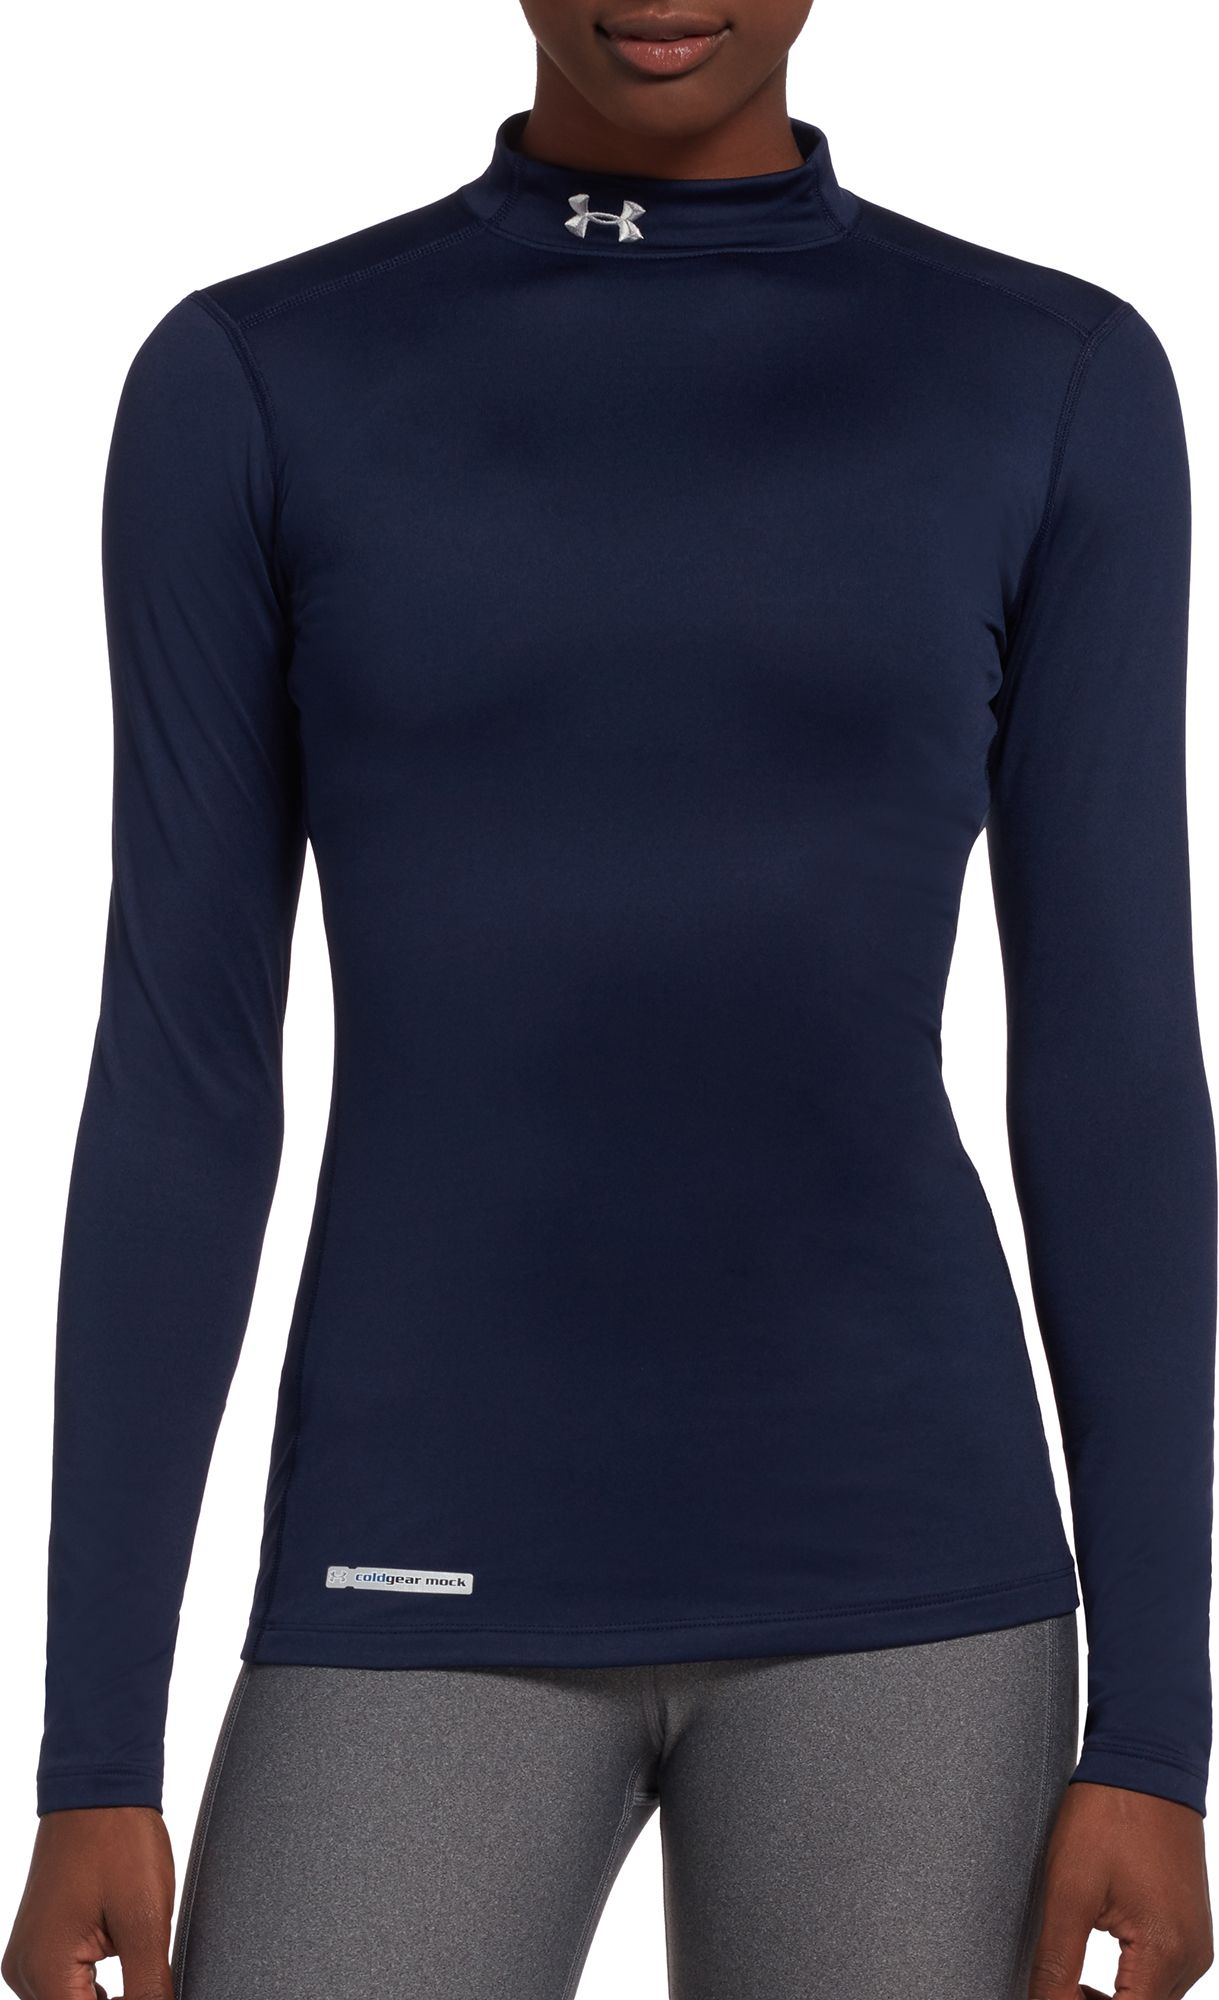 under armour jackets women s. under armour women\u0027s fitted coldgear mockneck shirt jackets women s